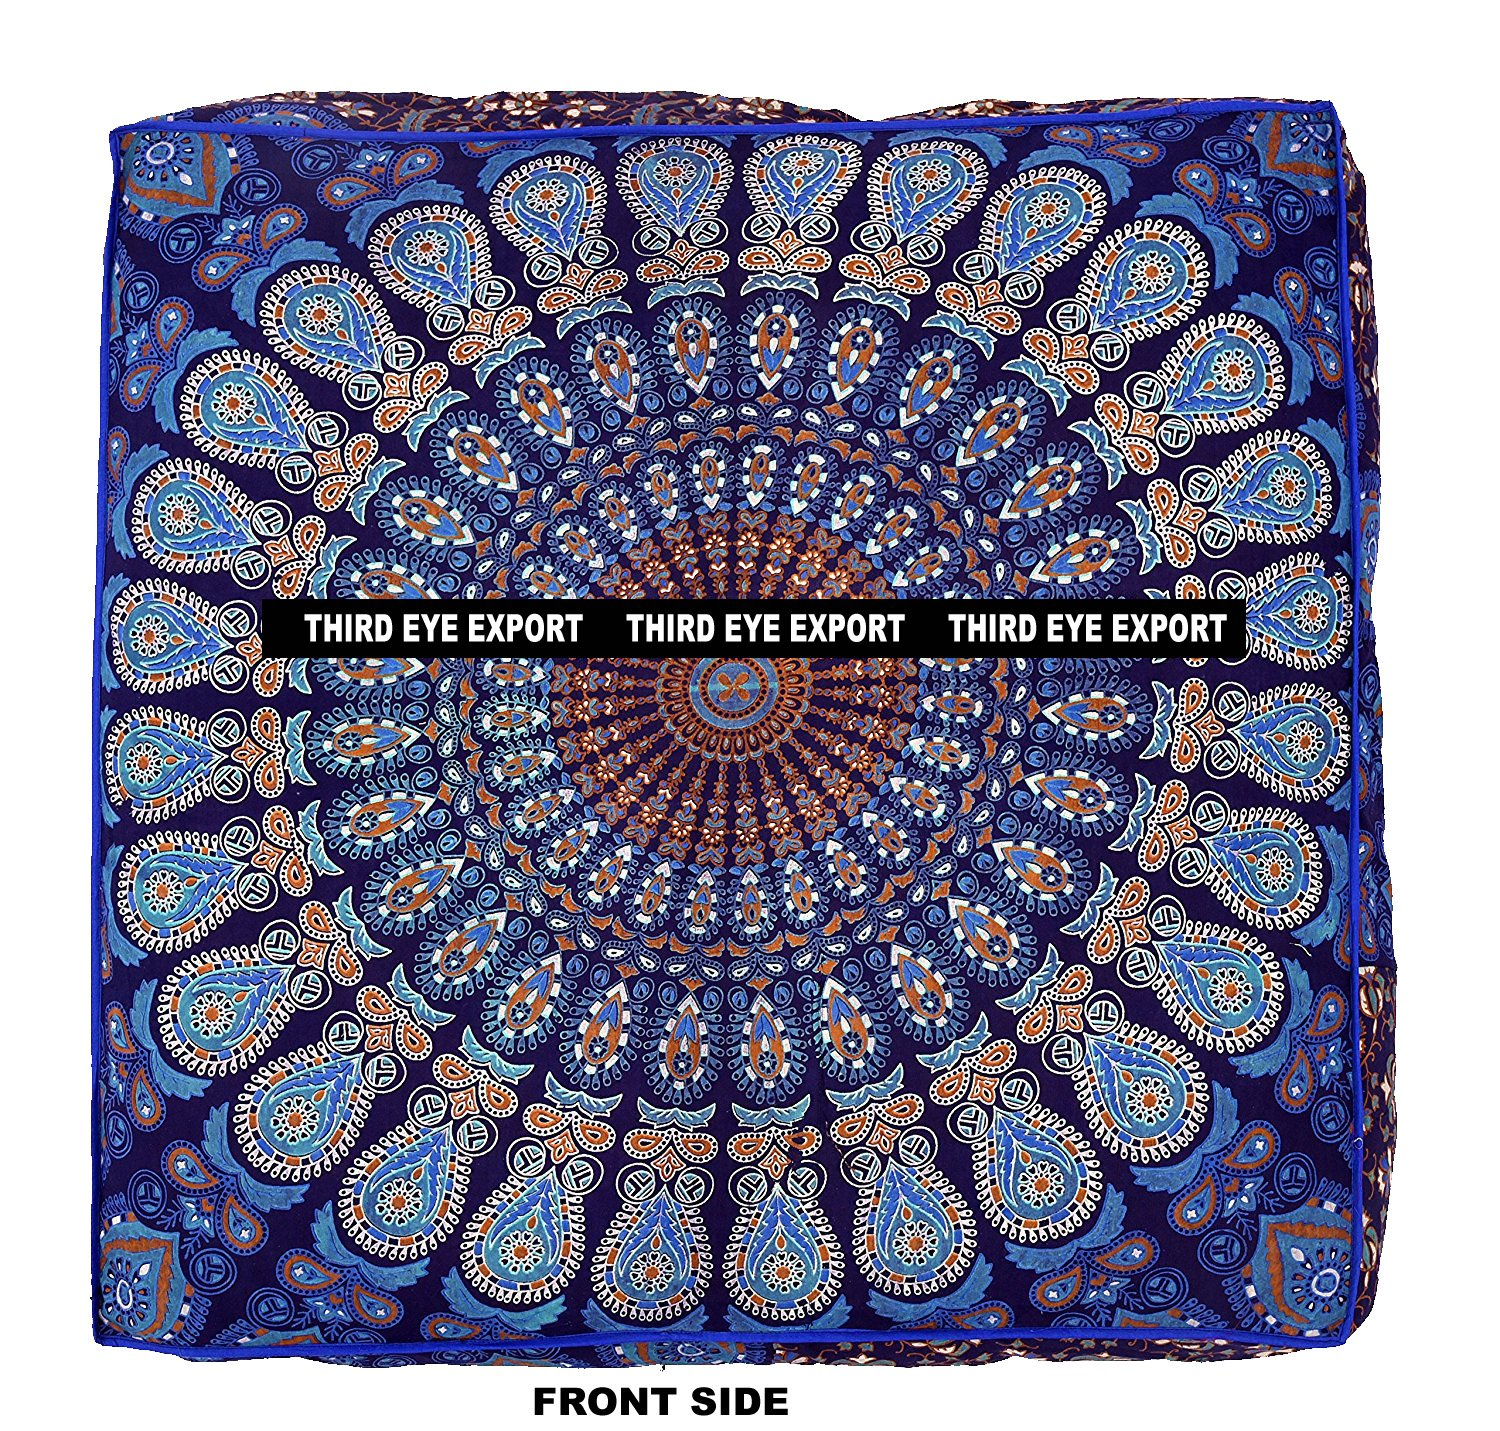 Third Eye Export Indian Mandala Floor Pillow Square Ottoman Pouf Daybed Oversized Cushion Cover Cotton Seating Ottoman Poufs Dog/Pets Bed (Blue Cover Only) DBC-2